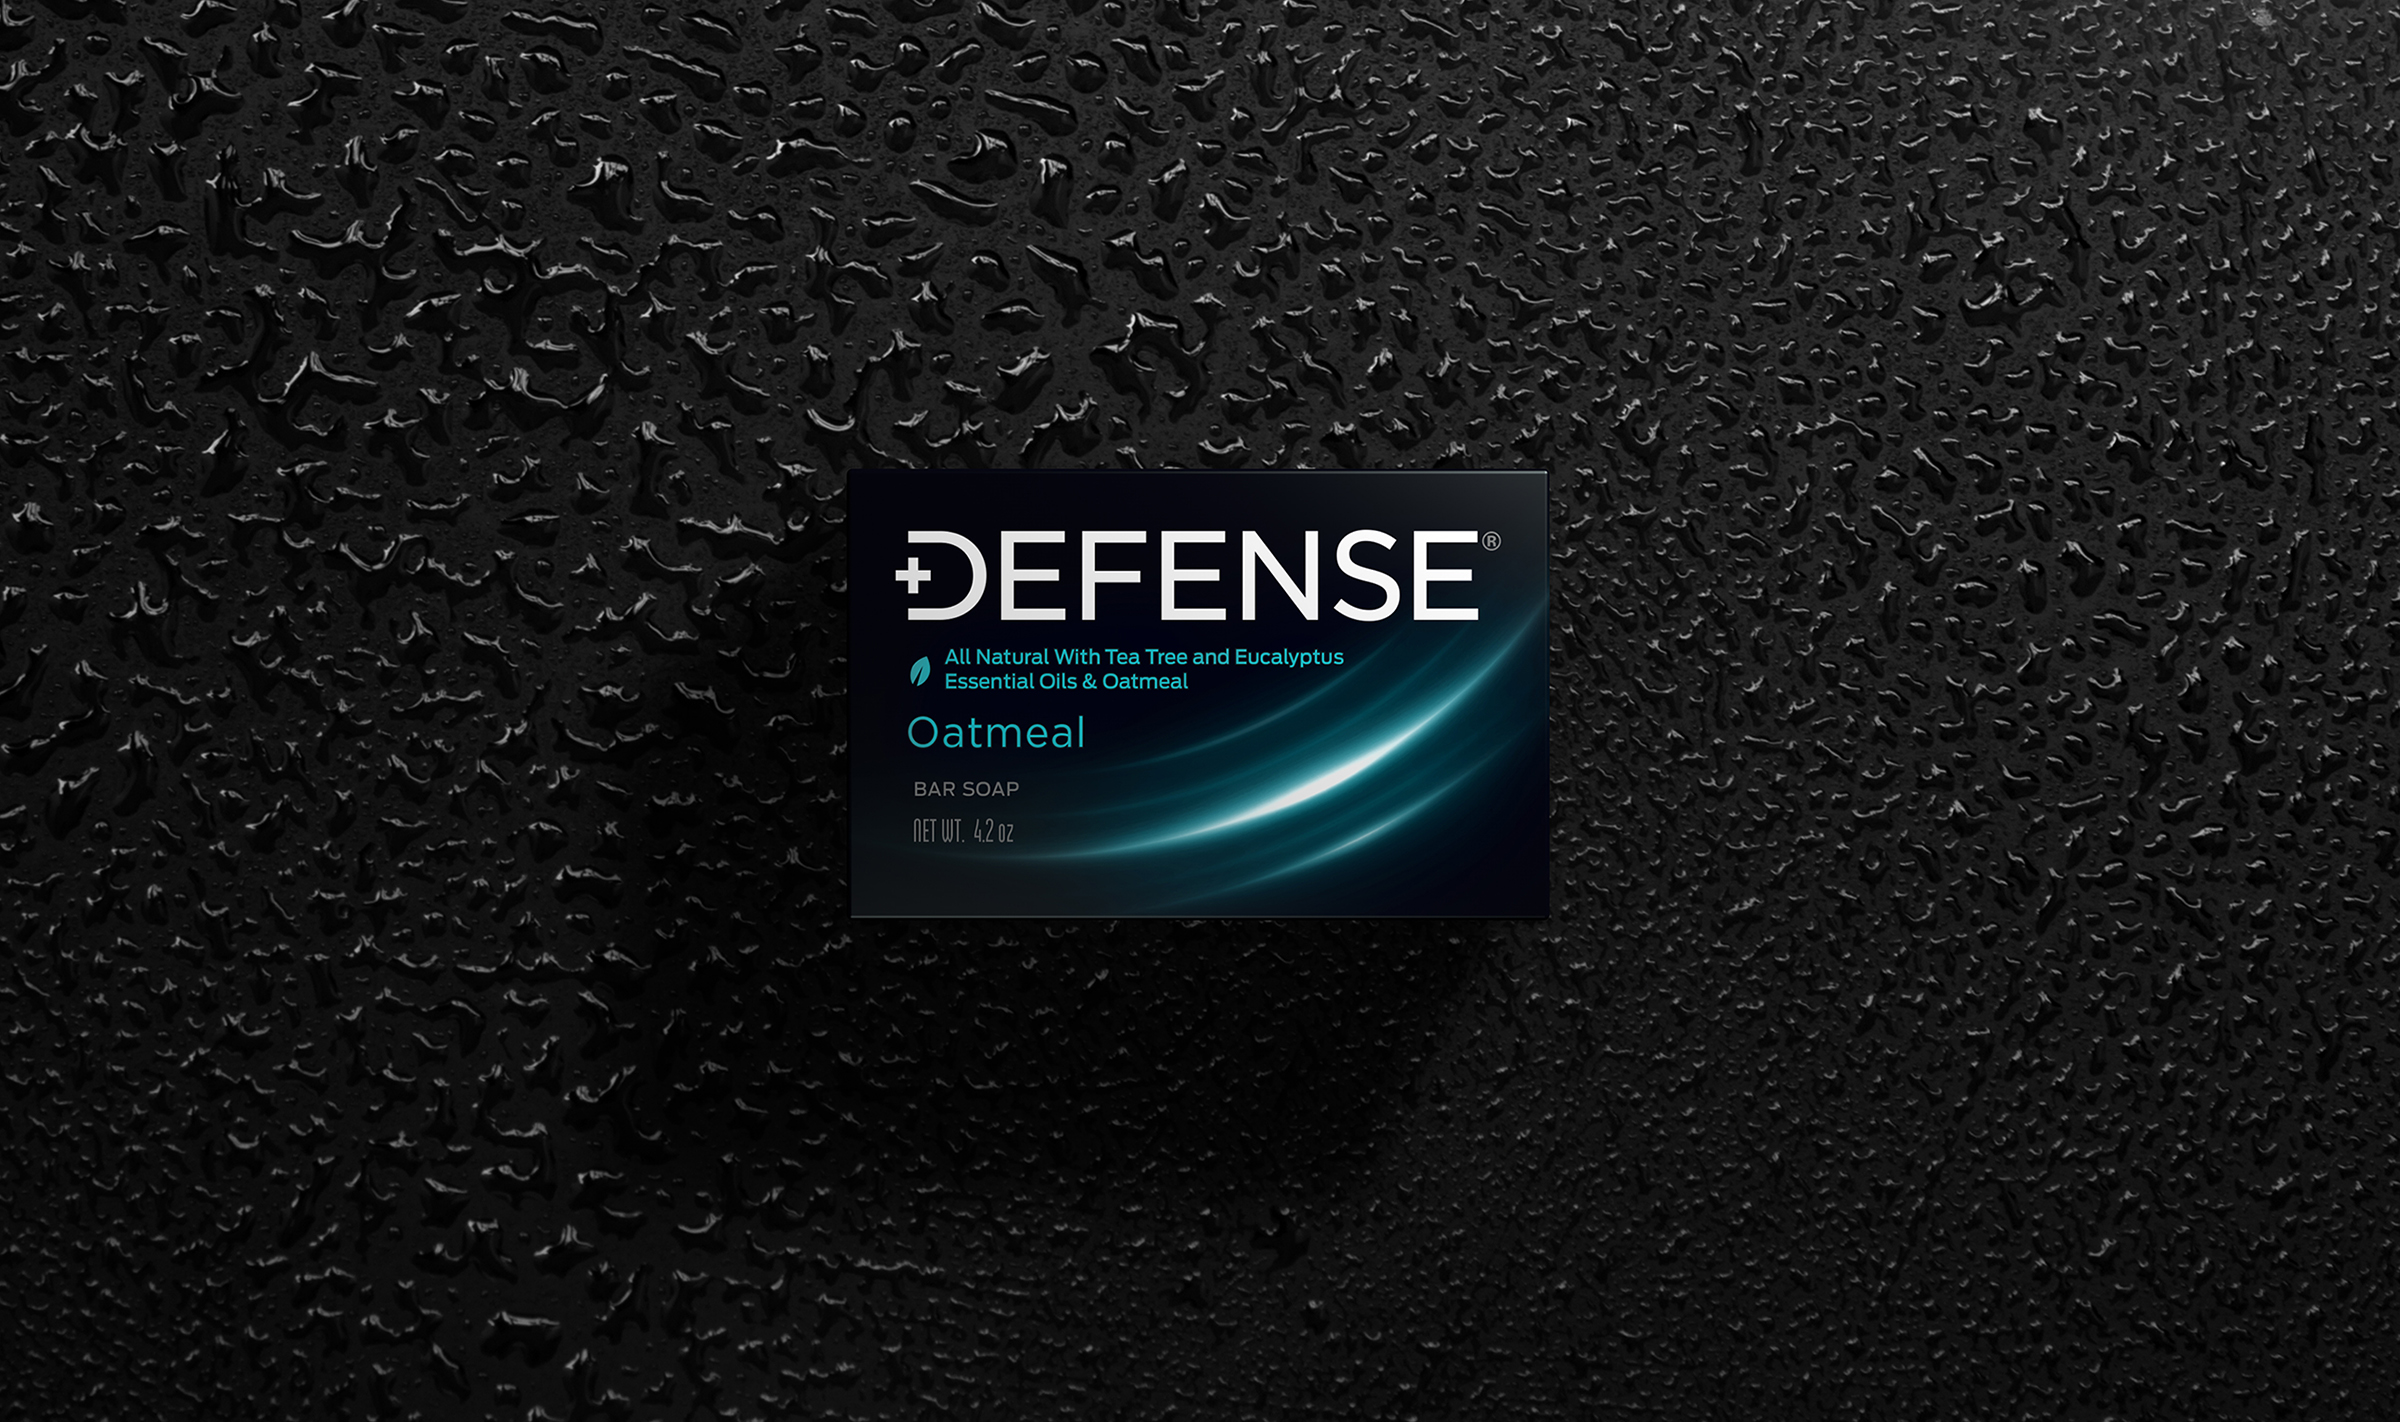 Bridgemark Develop the Brand and Packaging Design for Defense Soap: From Niche Brand to Defense Against COVID